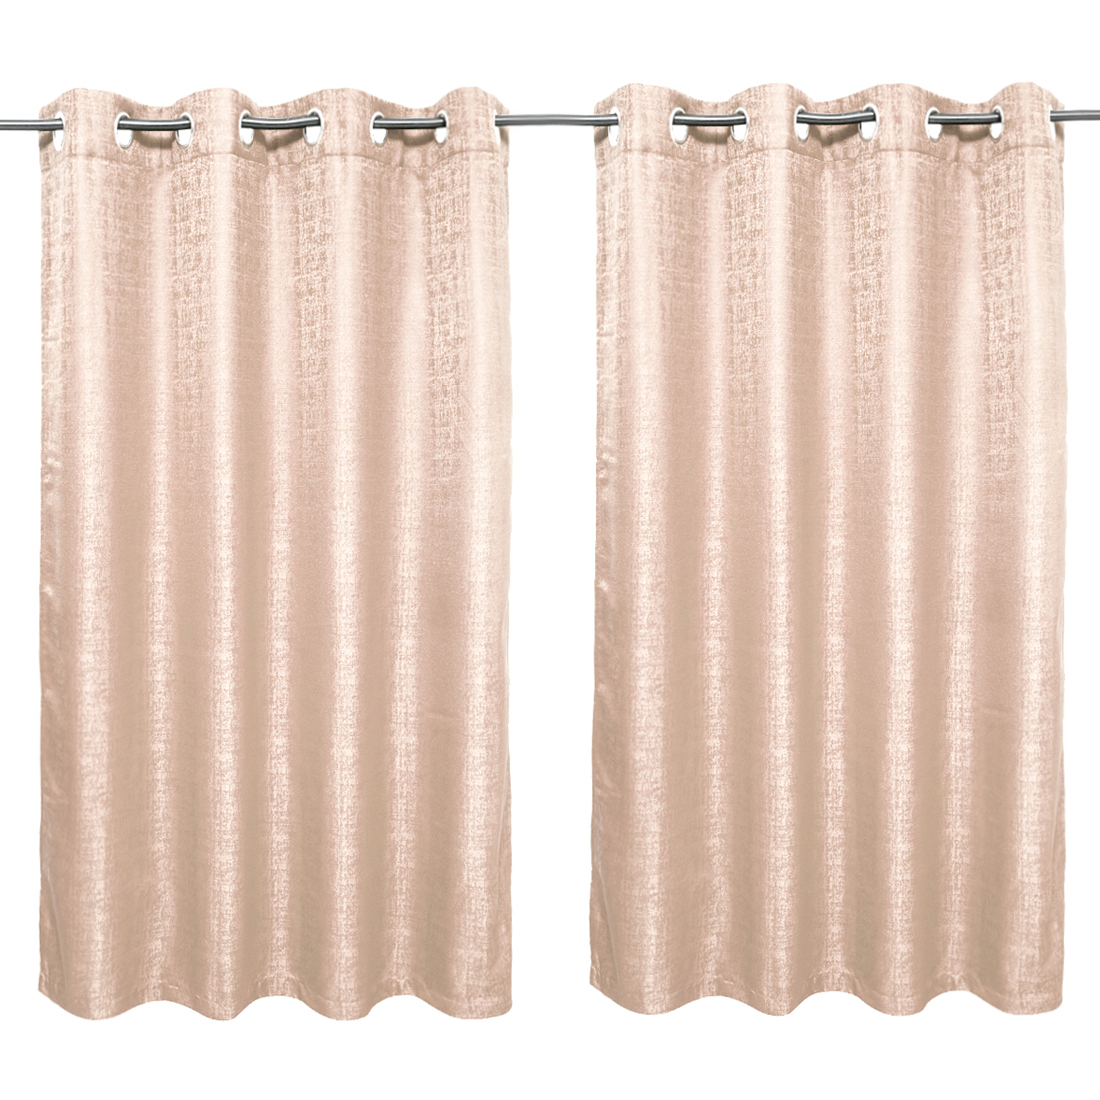 Nora Solid set of 2 Polyester Window Curtains in Beige Colour by Living Essence